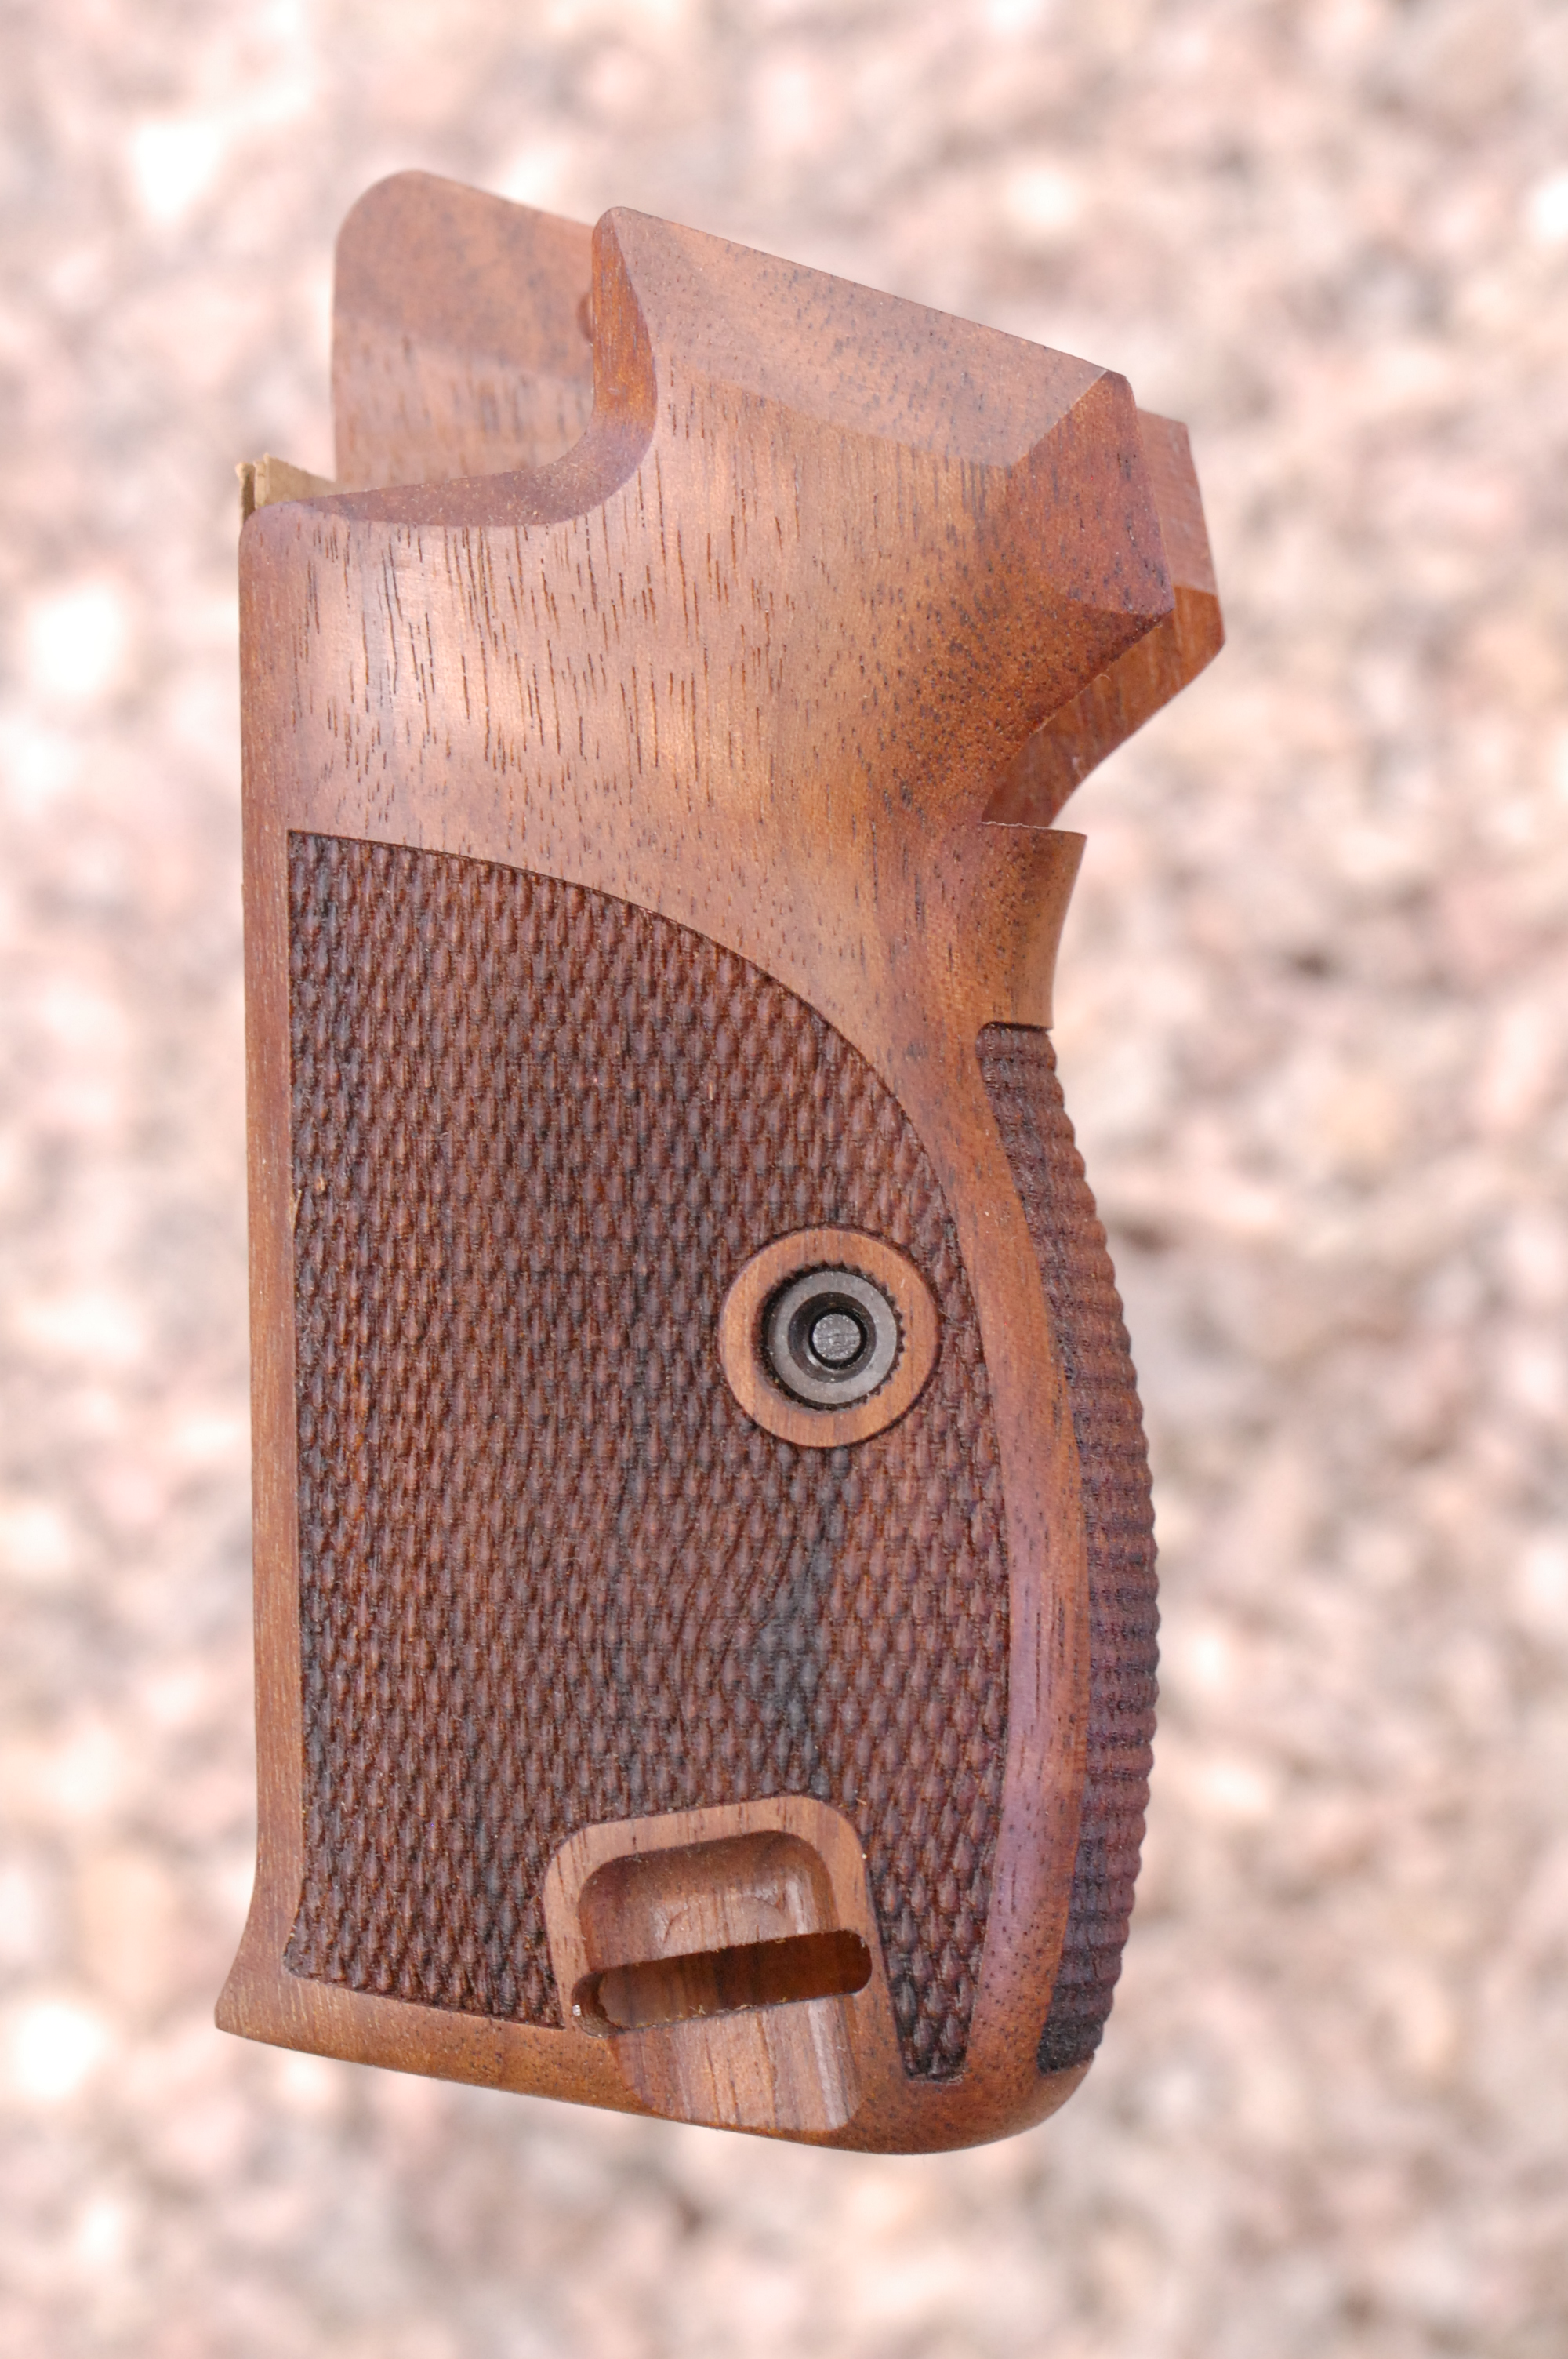 SIG P210 grips, bottom m.r., heavy (checkered back) - full size